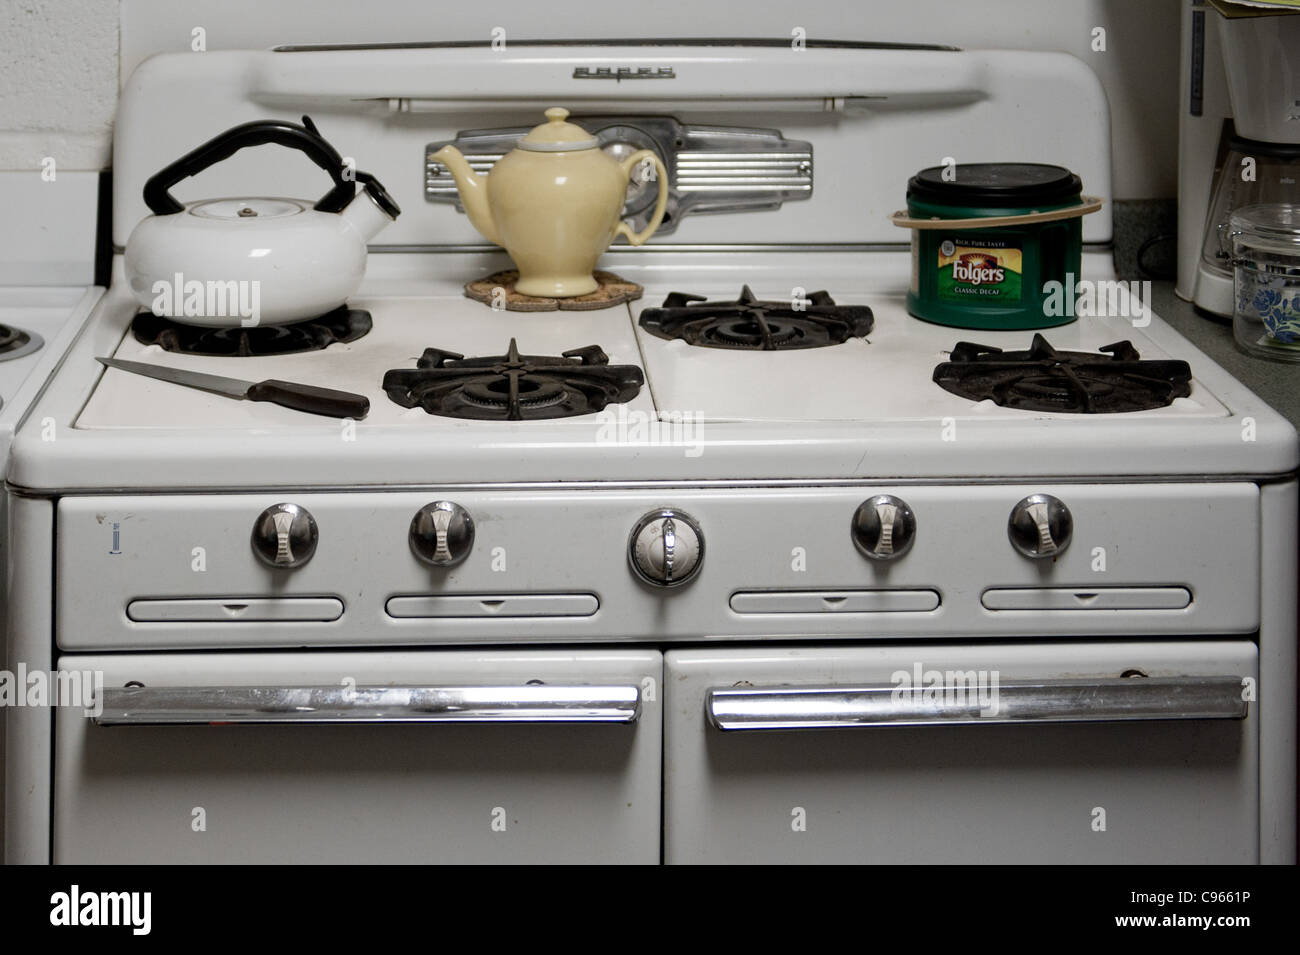 Retro white stove and oven in a kitchen with a yellow teapot on the burner - Stock Image